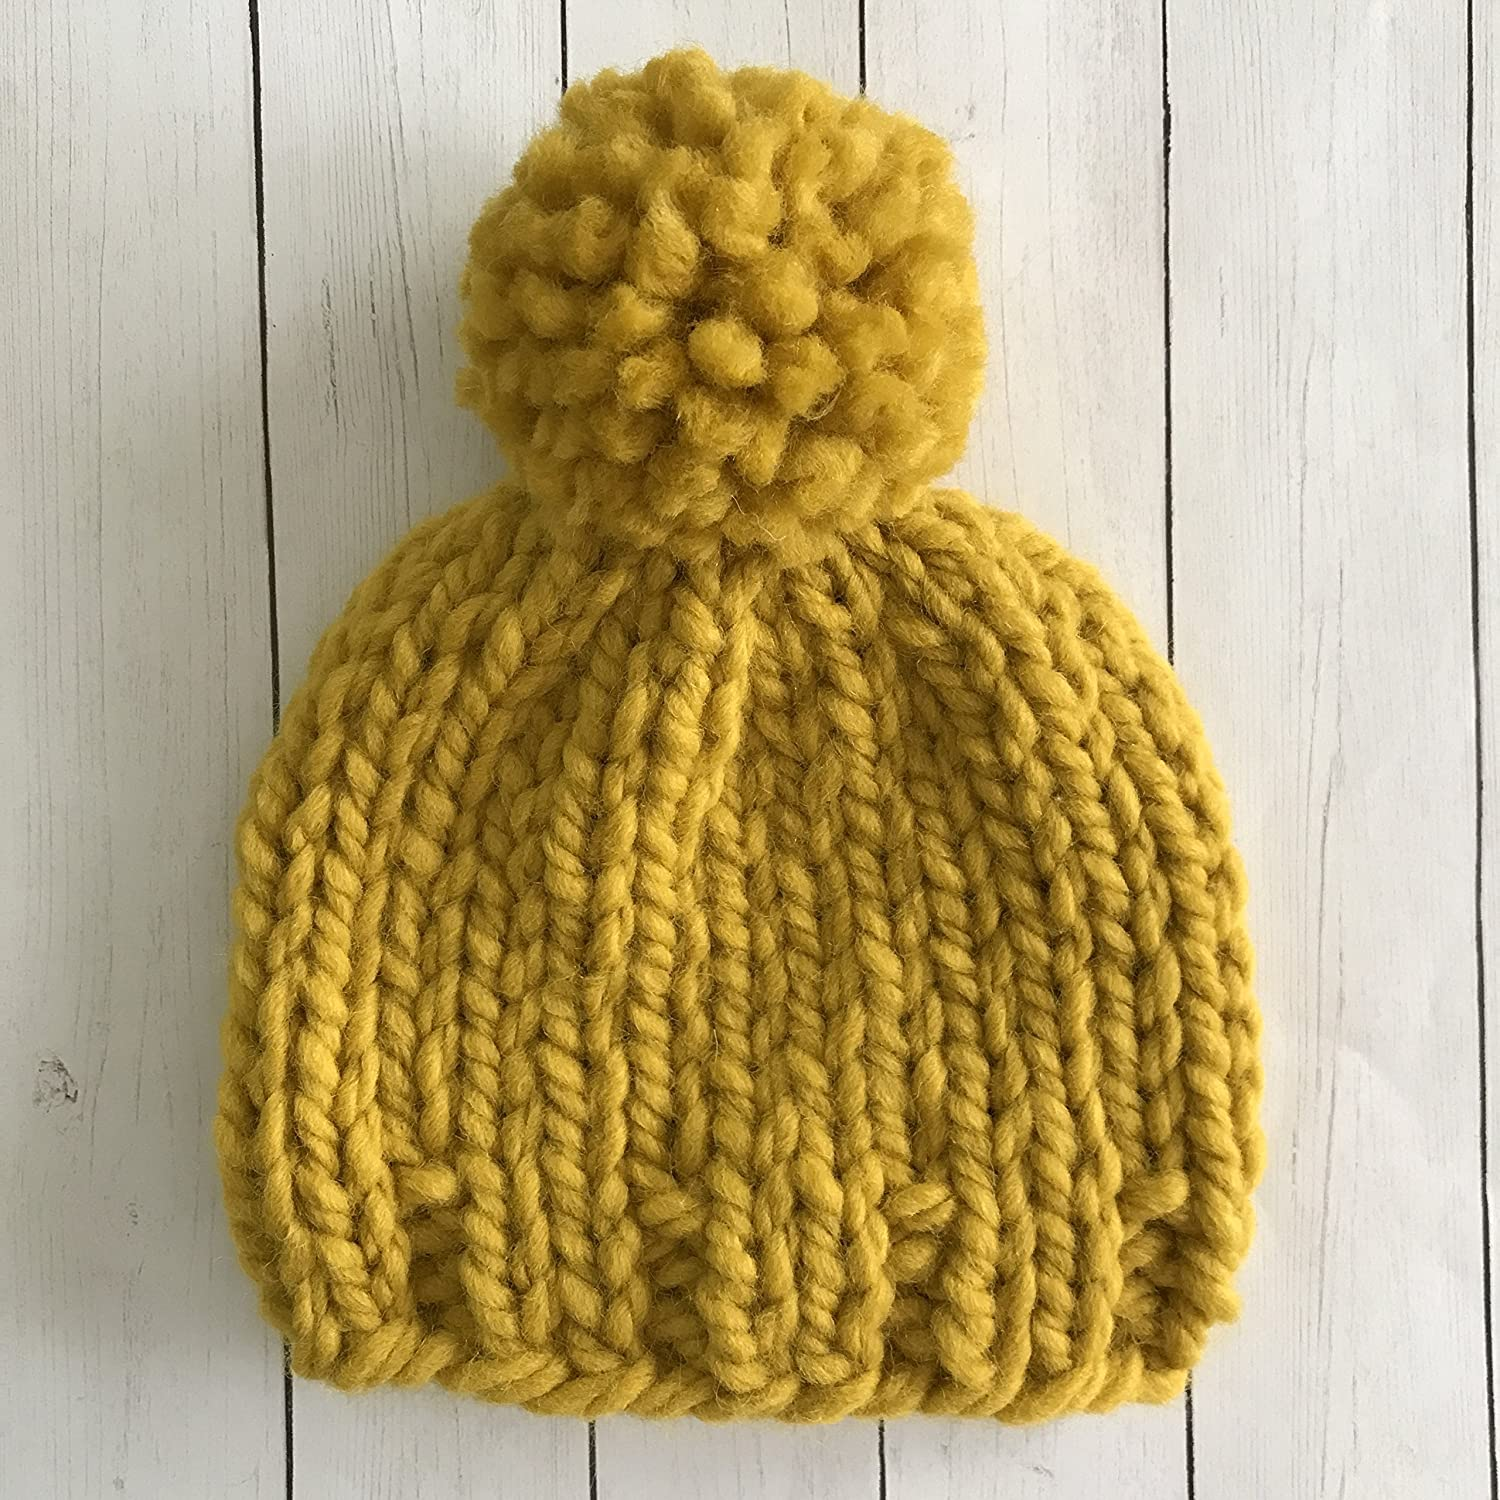 Amazon.com  Mustard Yellow Baby Beanie - 3-6 Months  Handmade 6a48cbdd4cd